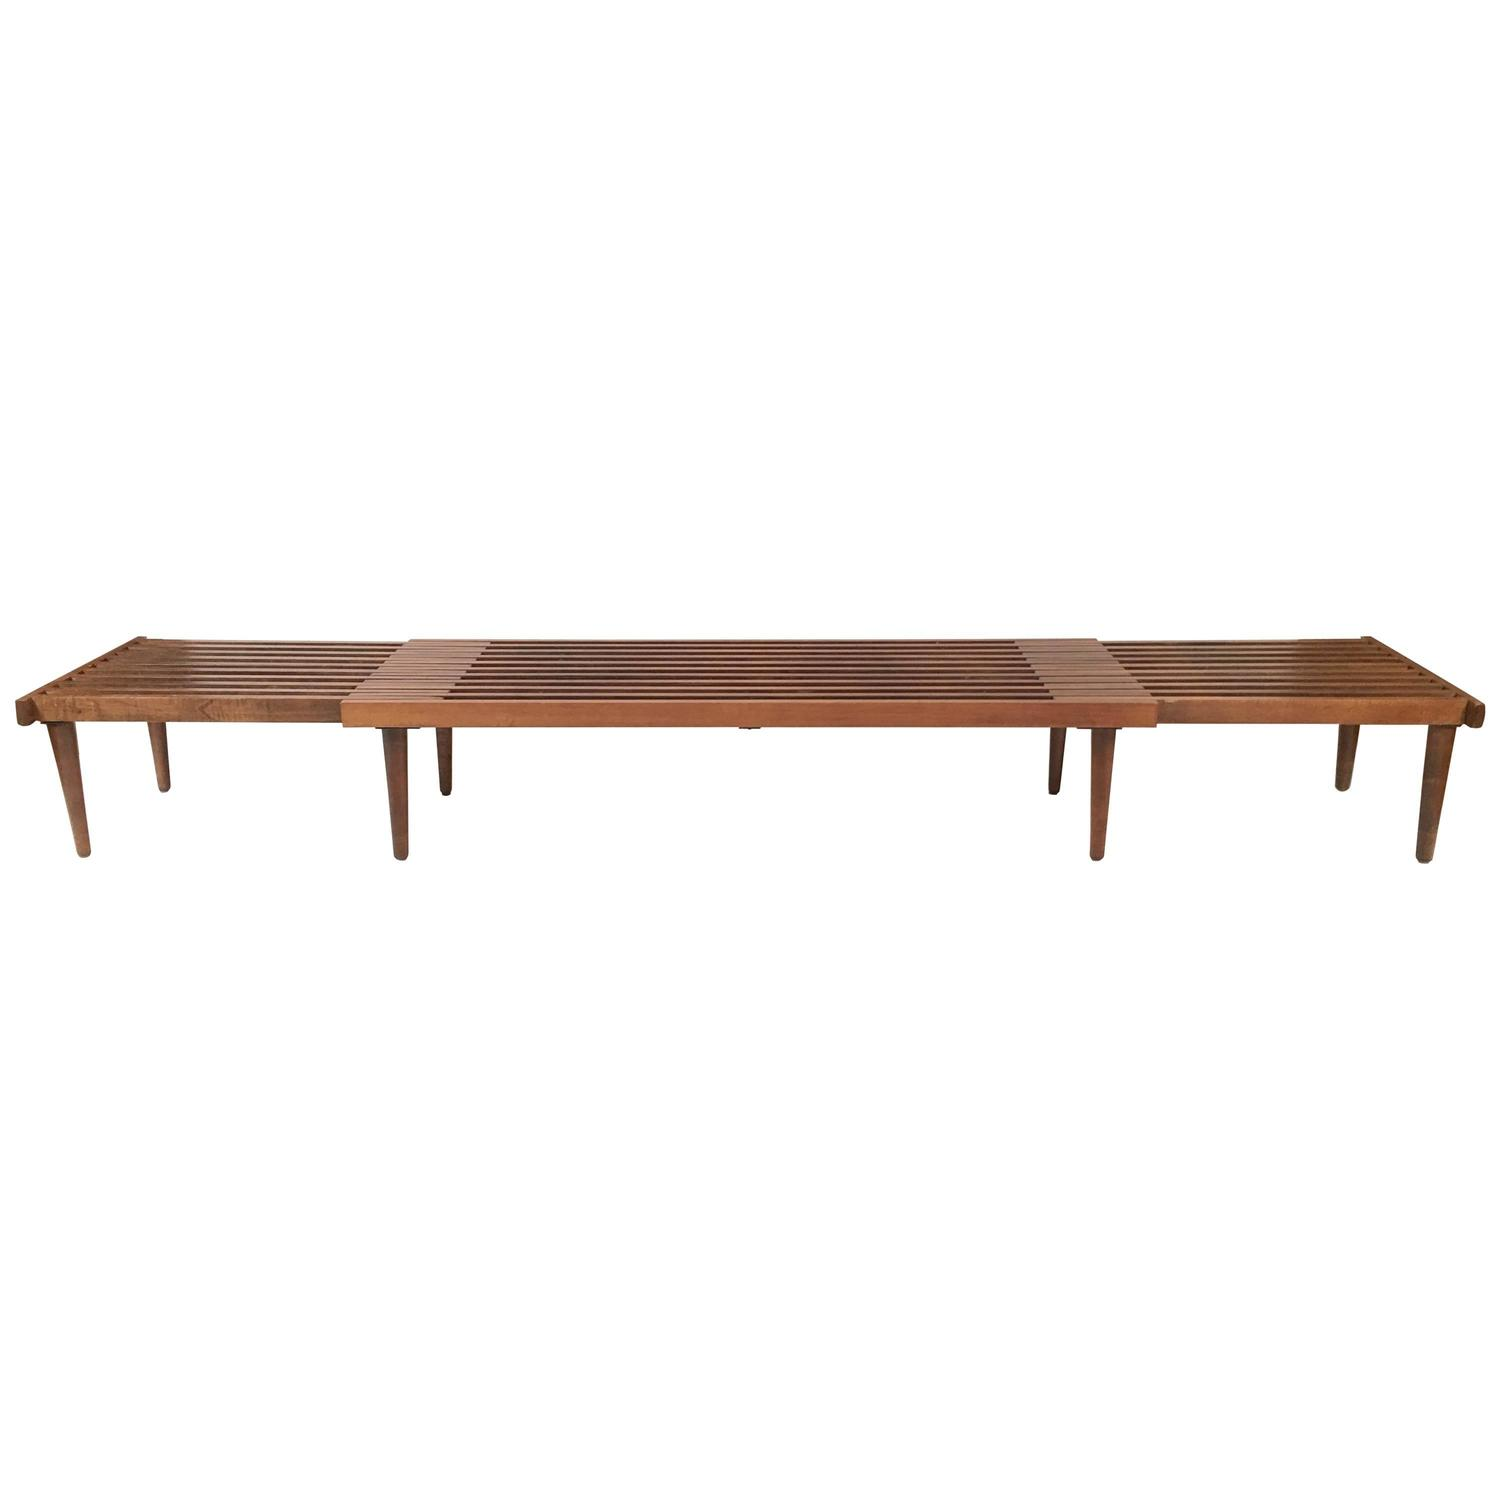 Mid Century Slat Wood Bench or Coffee Table Adjustable Length at